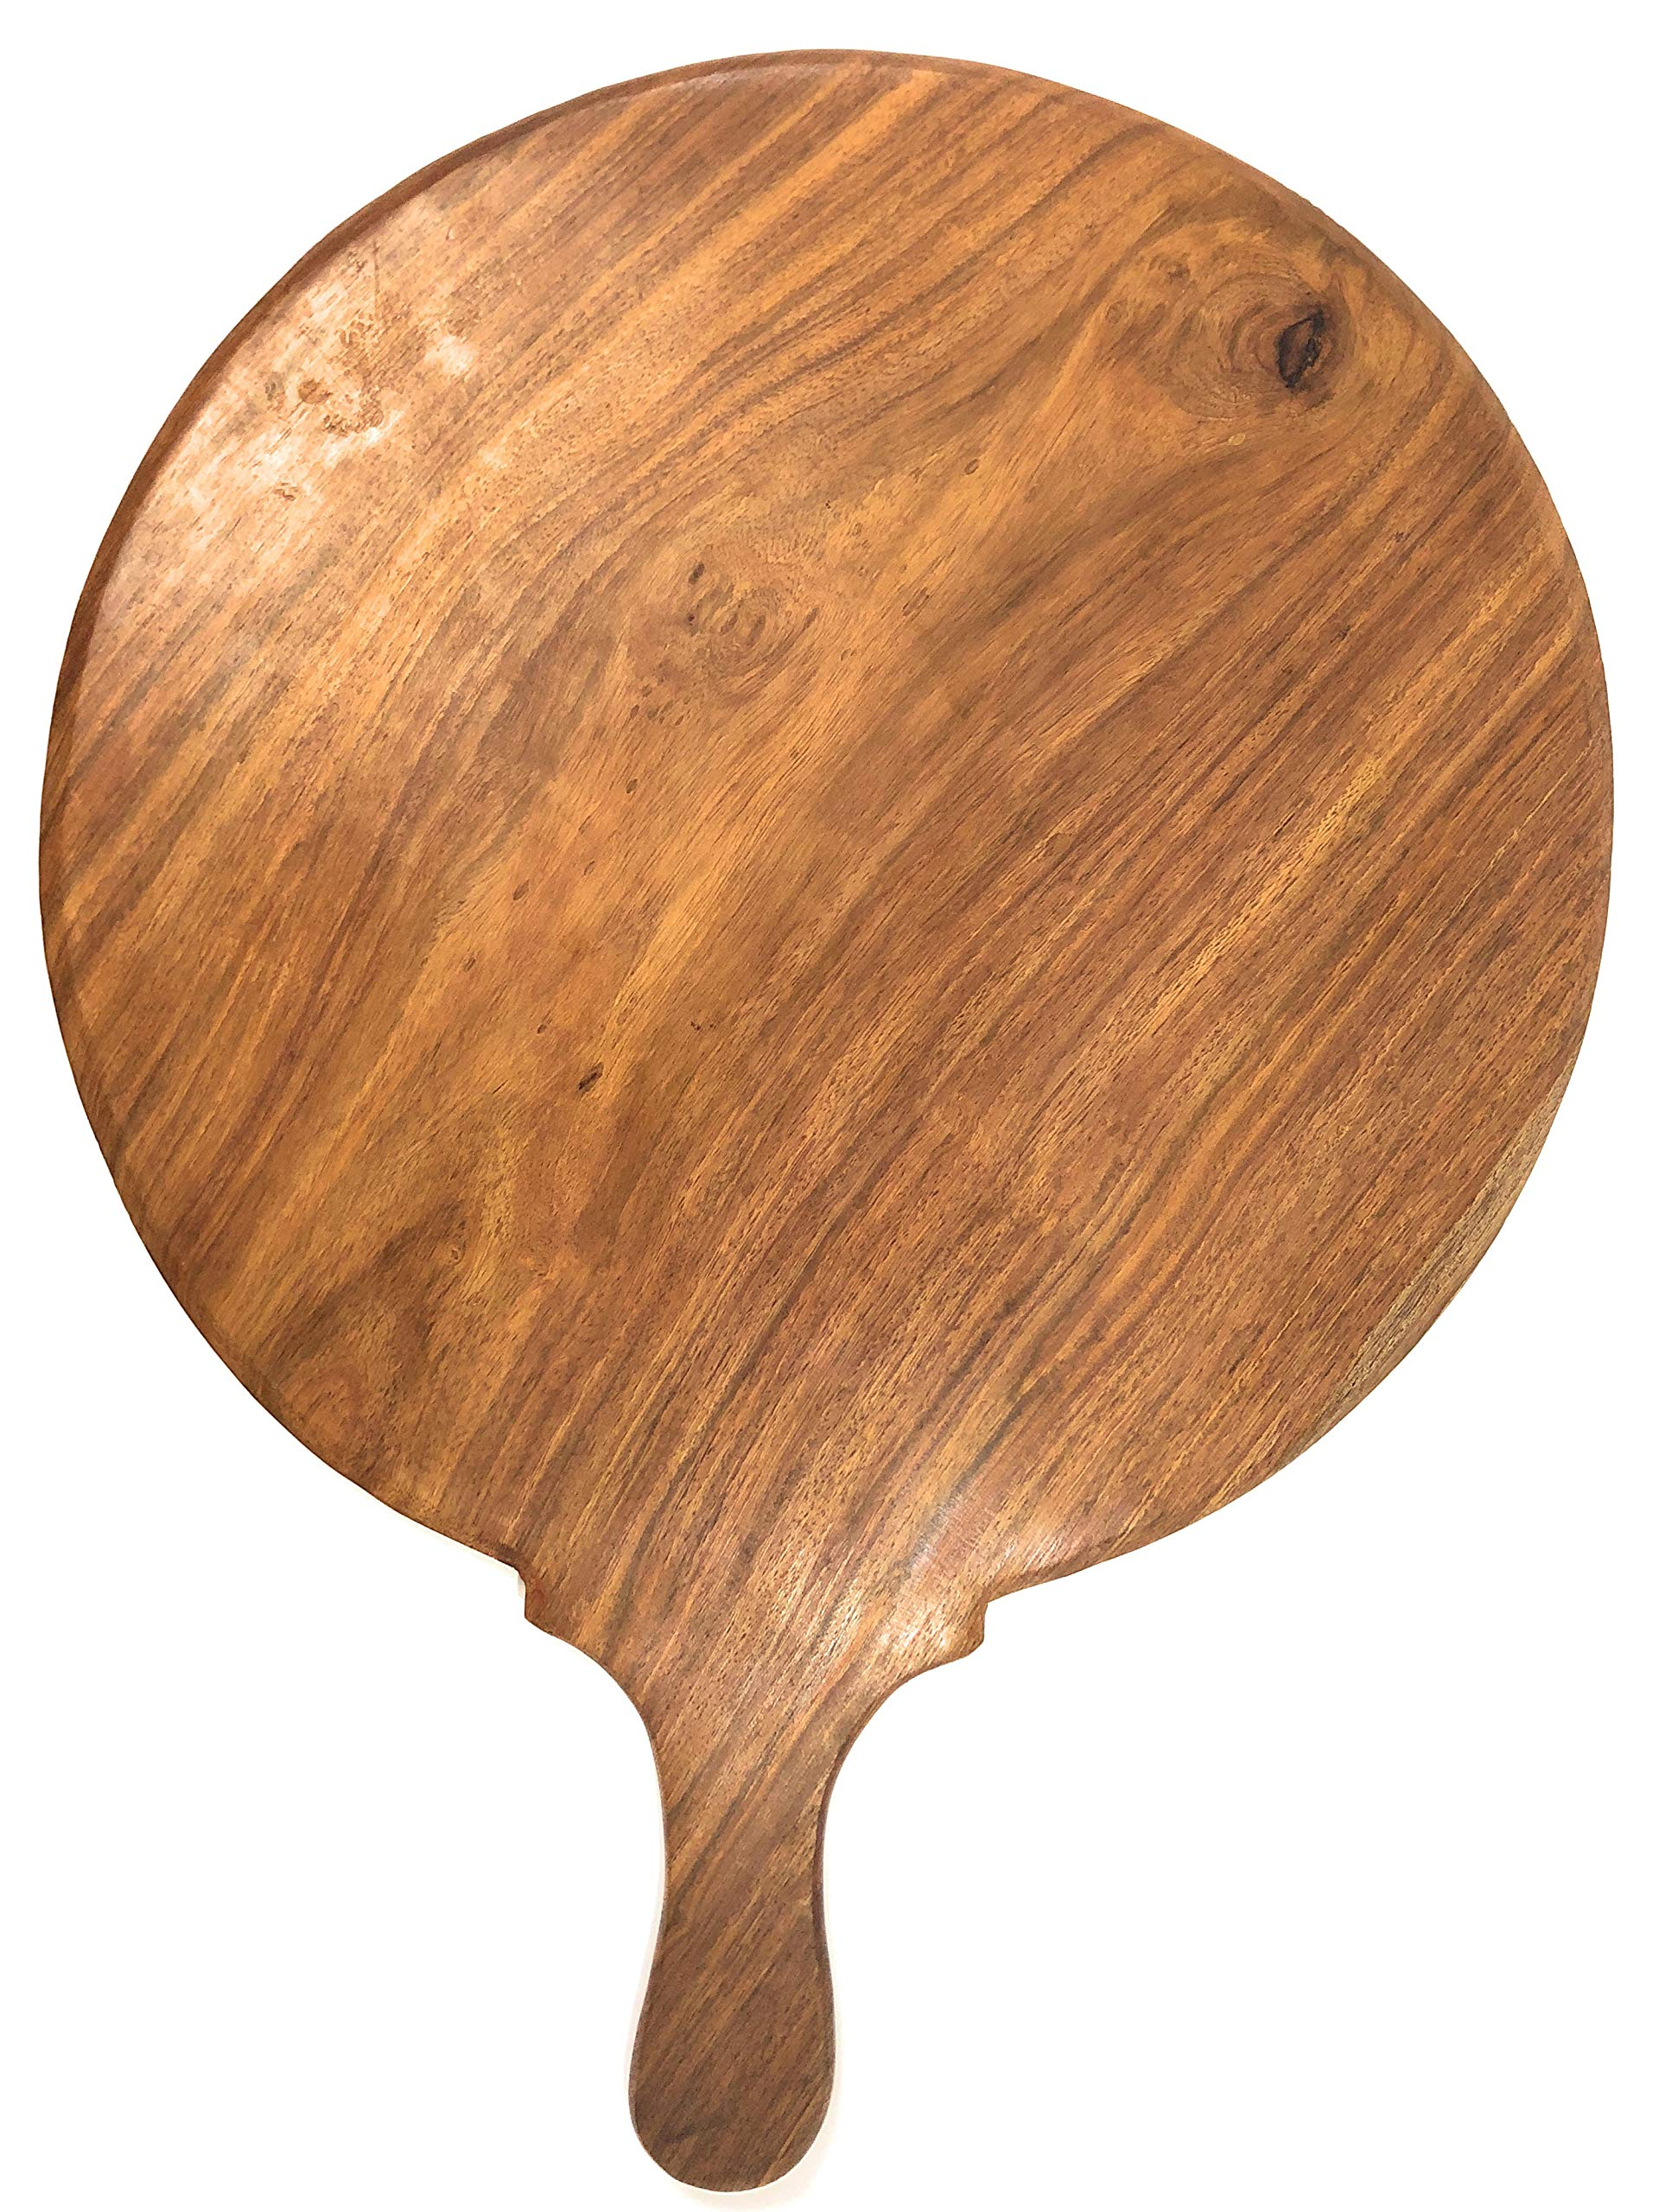 Wooden Peel/Board for Pizzas or Cheese, Handcrafted from a Single Piece of Indian Rosewood, Large in Size 14'' Diameter x 1/2'' Thin